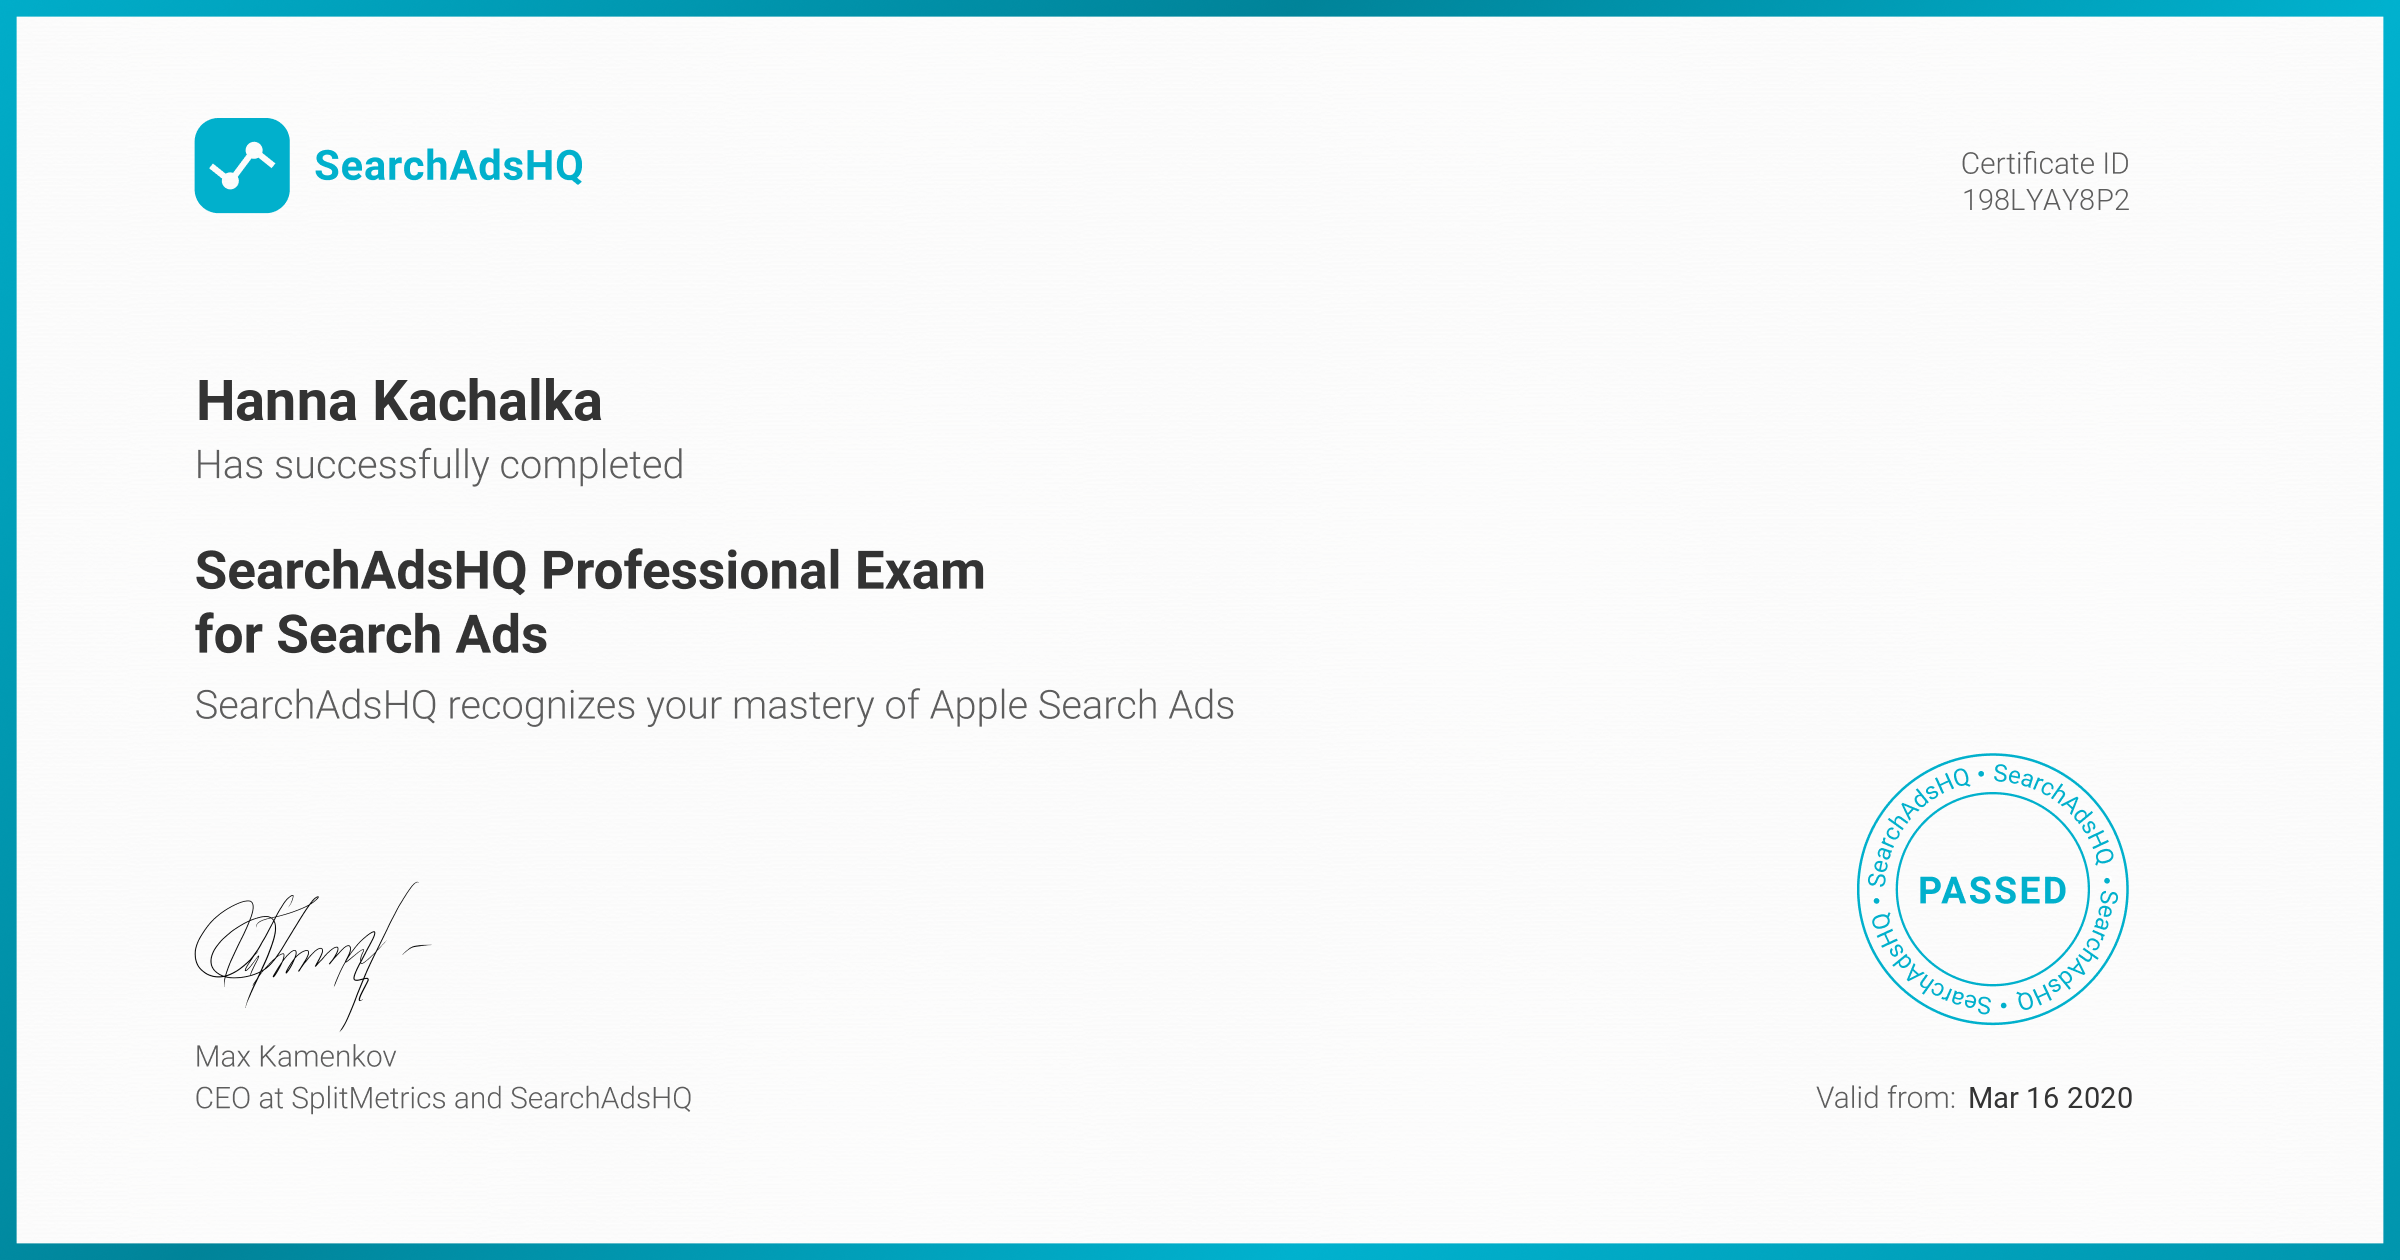 Certificate for Hanna Kachalka | SearchAdsHQ Professional Exam for Search Ads